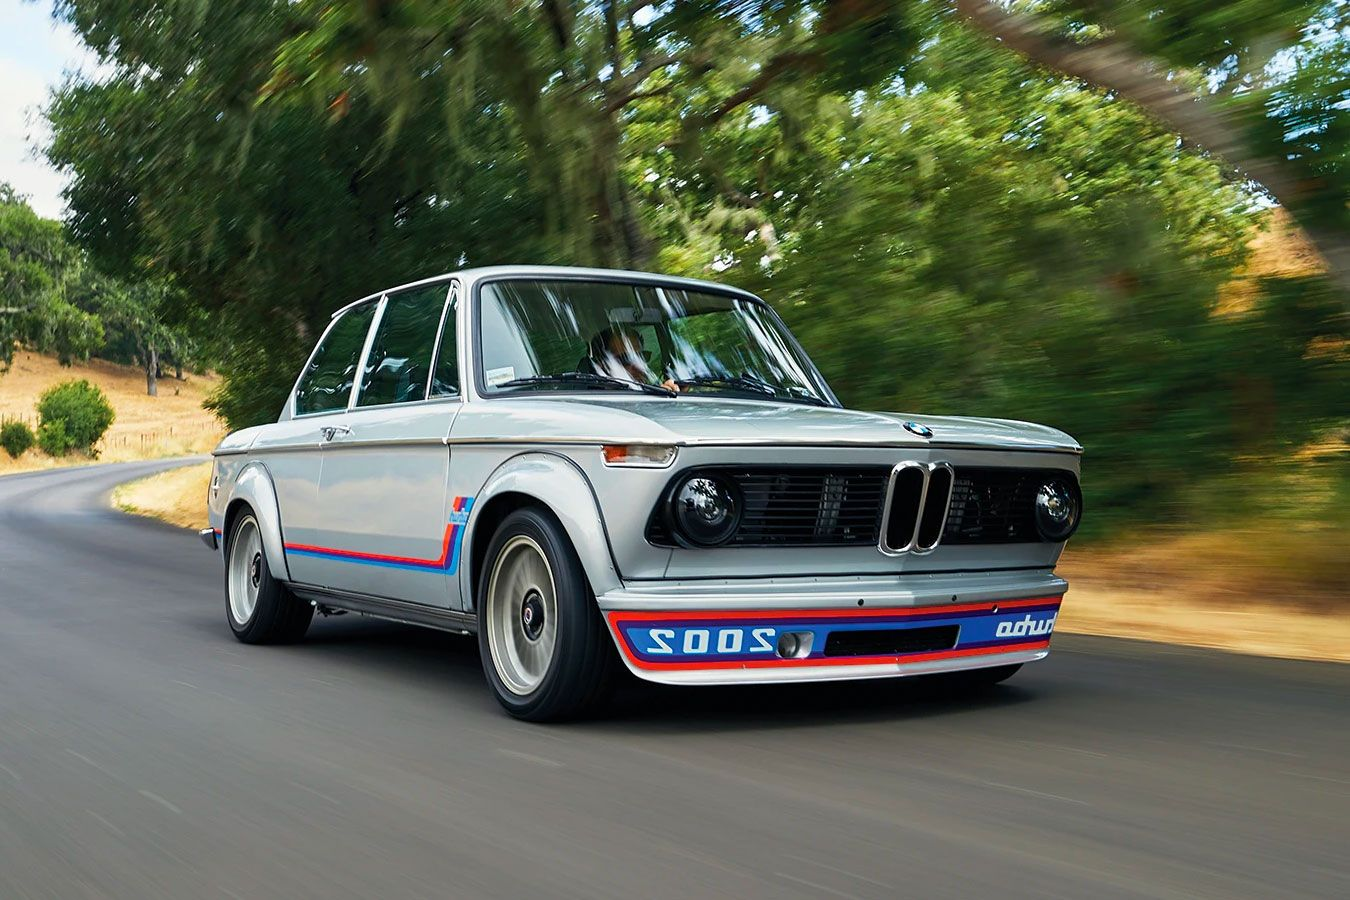 It S Your Last Chance To Win This Super Rare Vintage Bmw 2002 Turbo